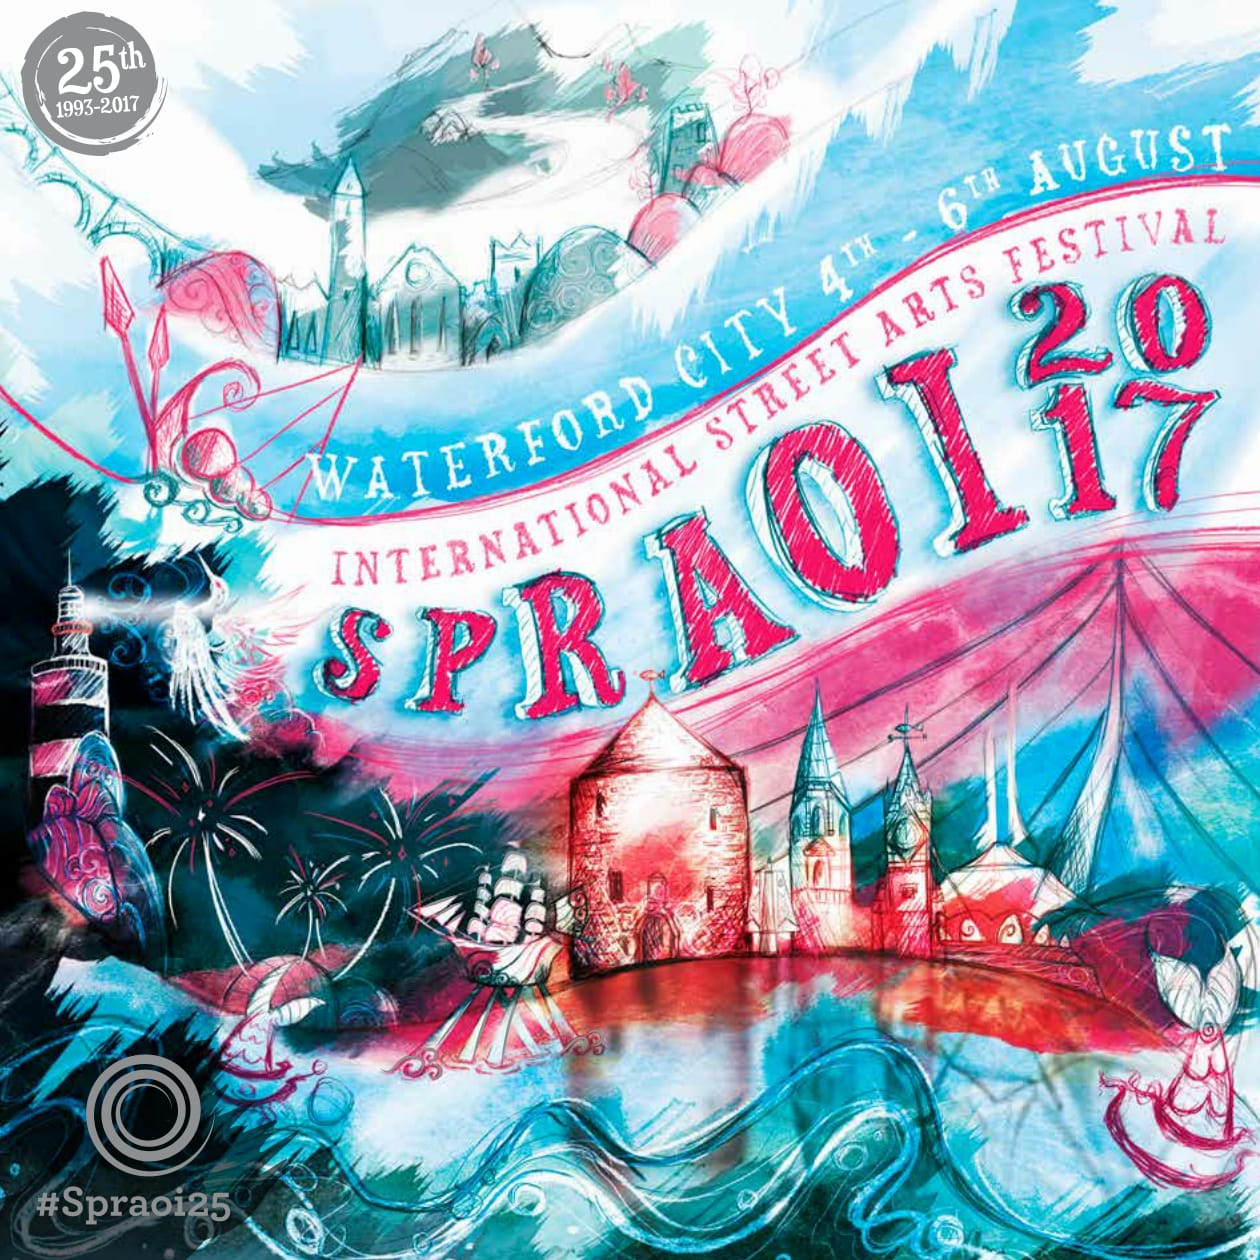 What's coming up this weekend at Spraoi